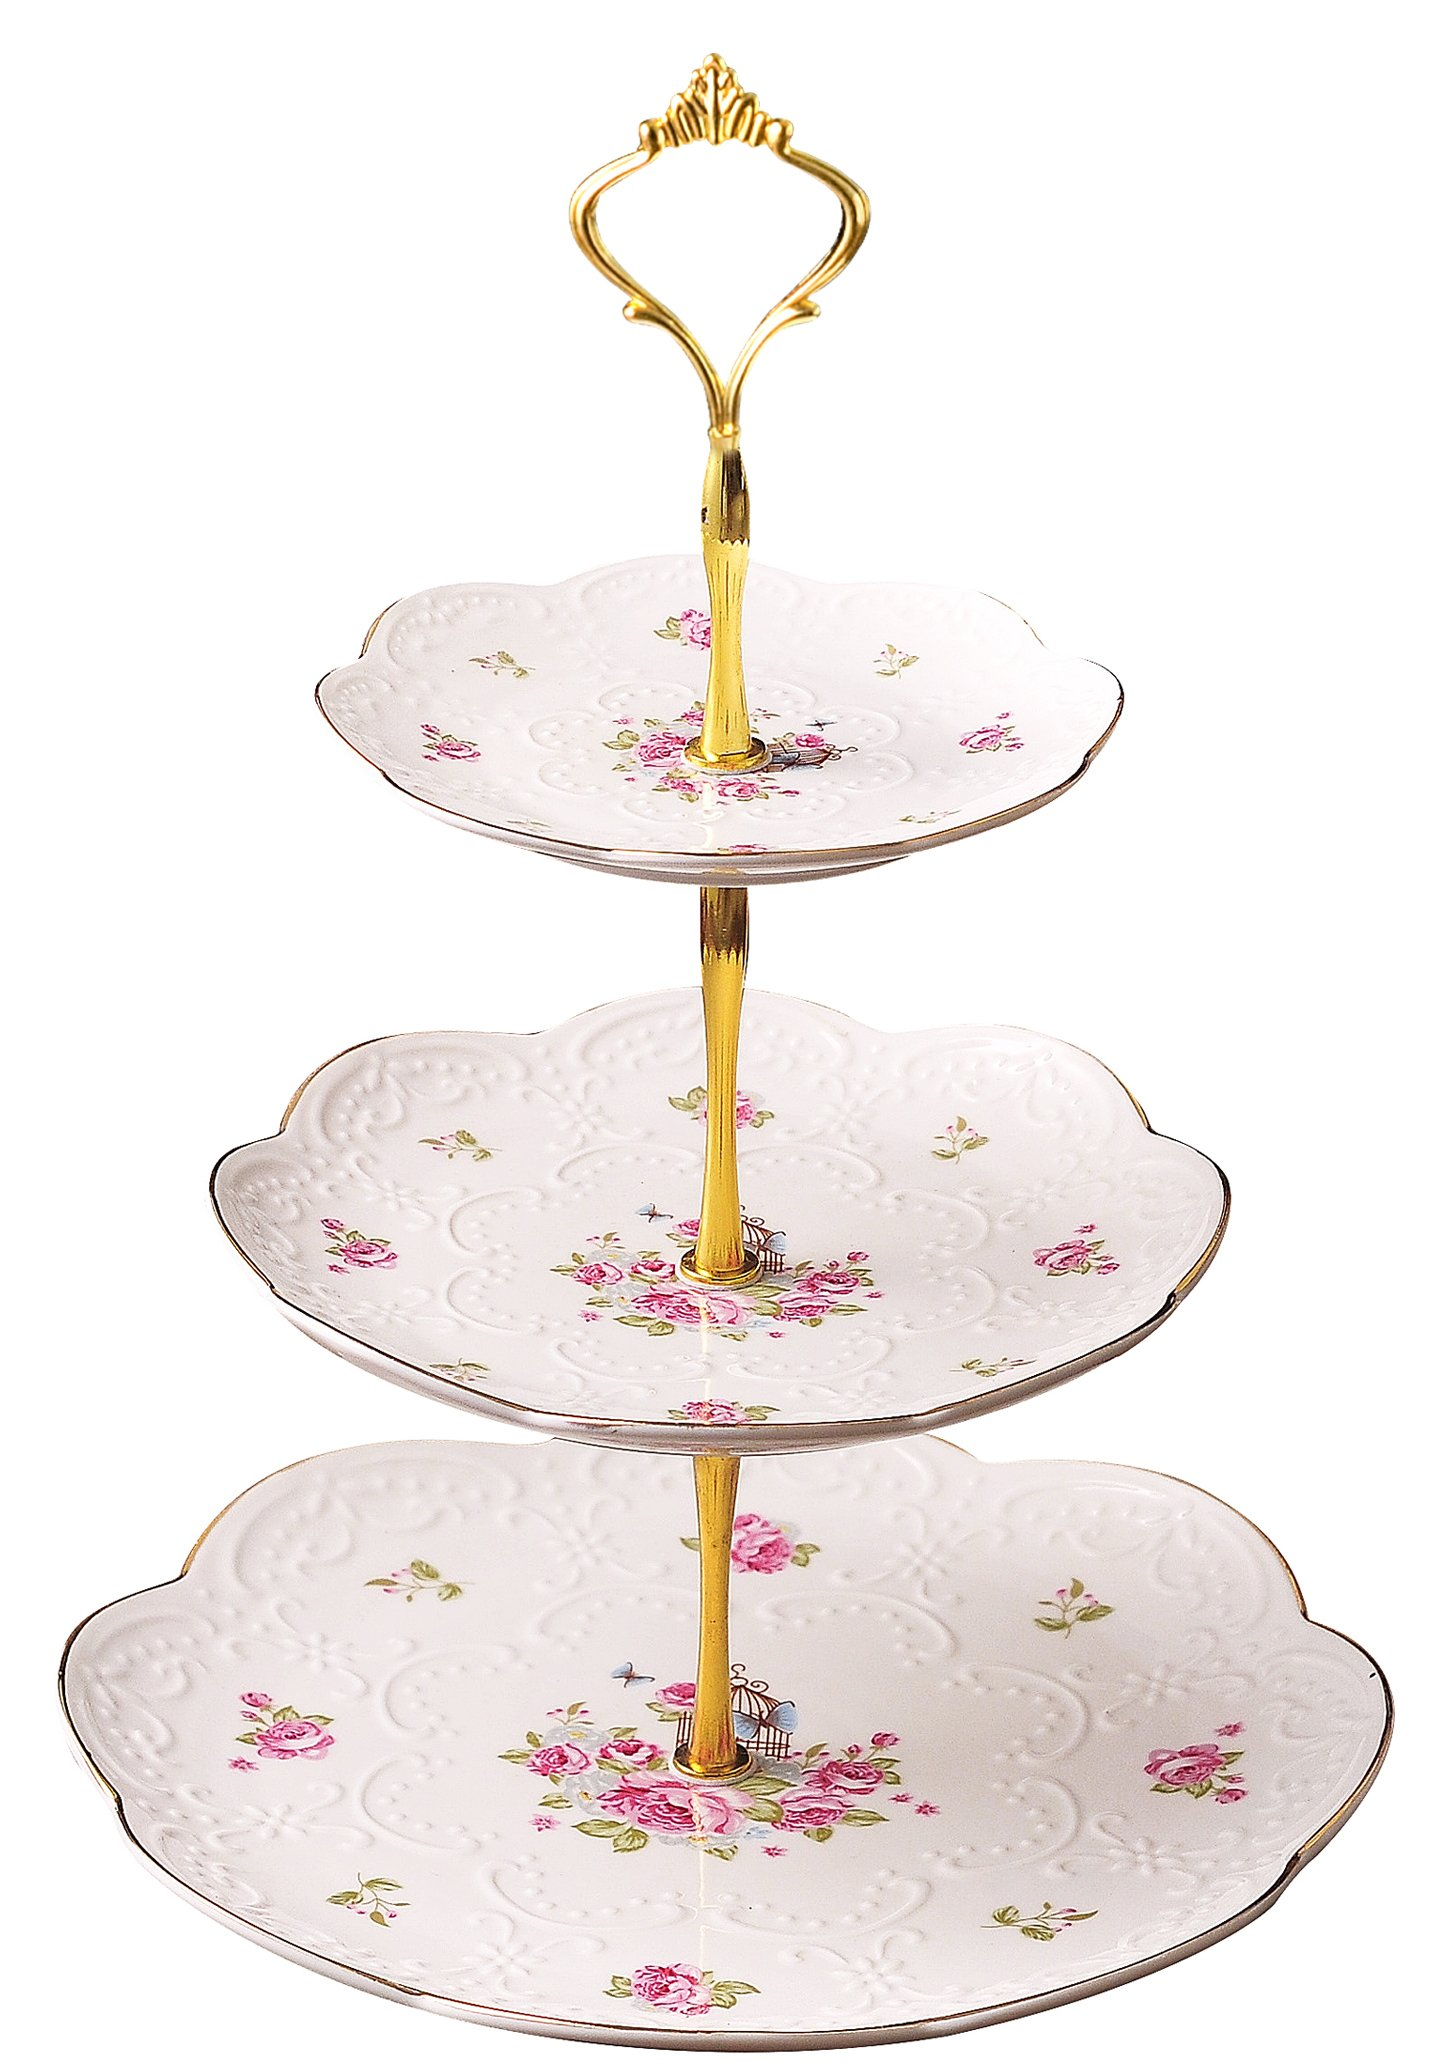 Jusalpha Elegant Embossed 3-tier Ceramic Cake Stand- Cupcake Stand- Tea Party Pastry Serving platter in Gift Box (FL-Stand 03) (3 Tier)